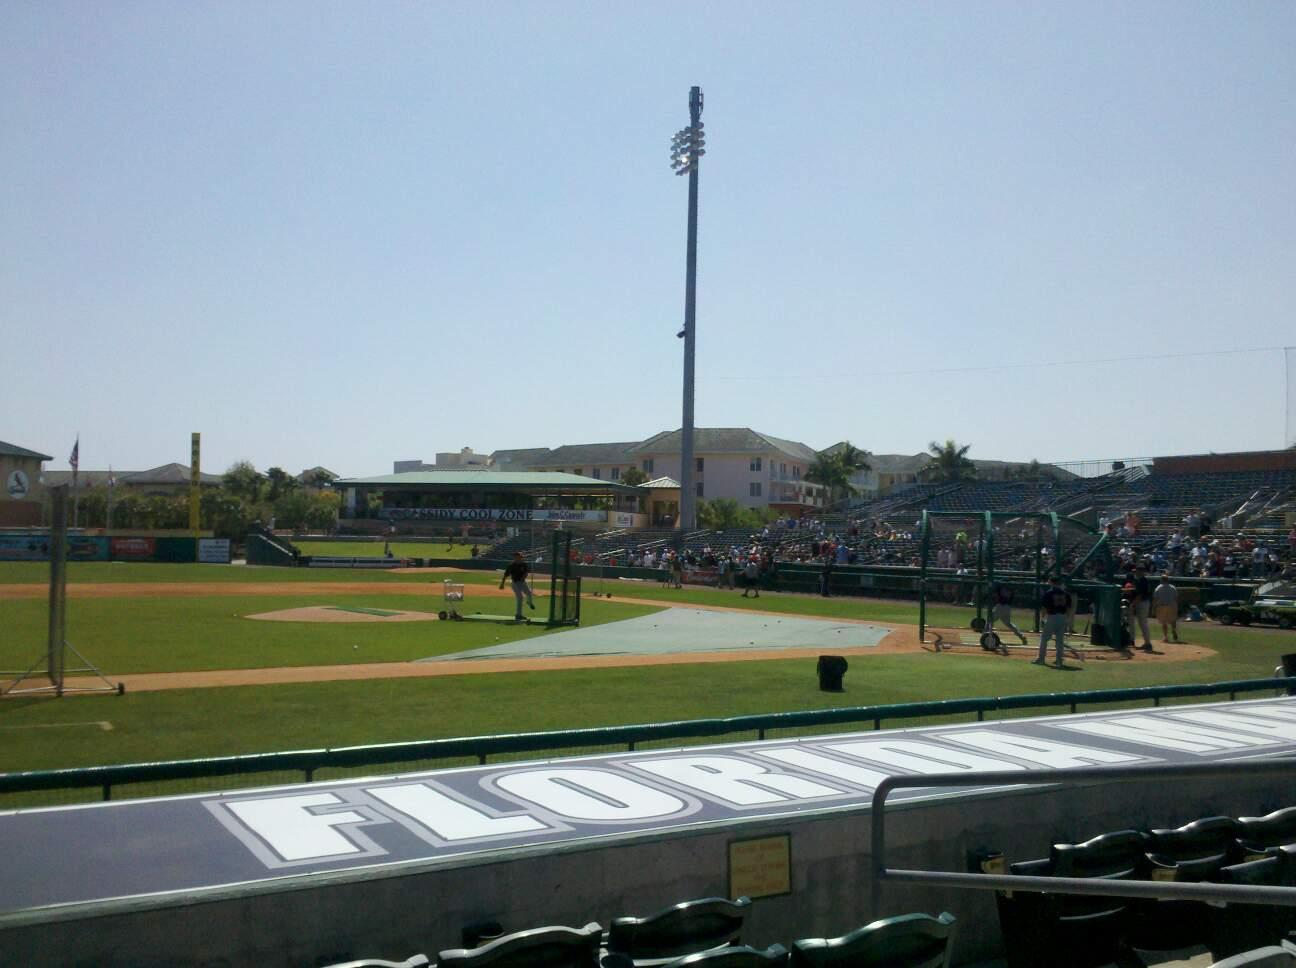 Roger Dean Chevrolet Stadium Section 119 Row 5 Seat 5